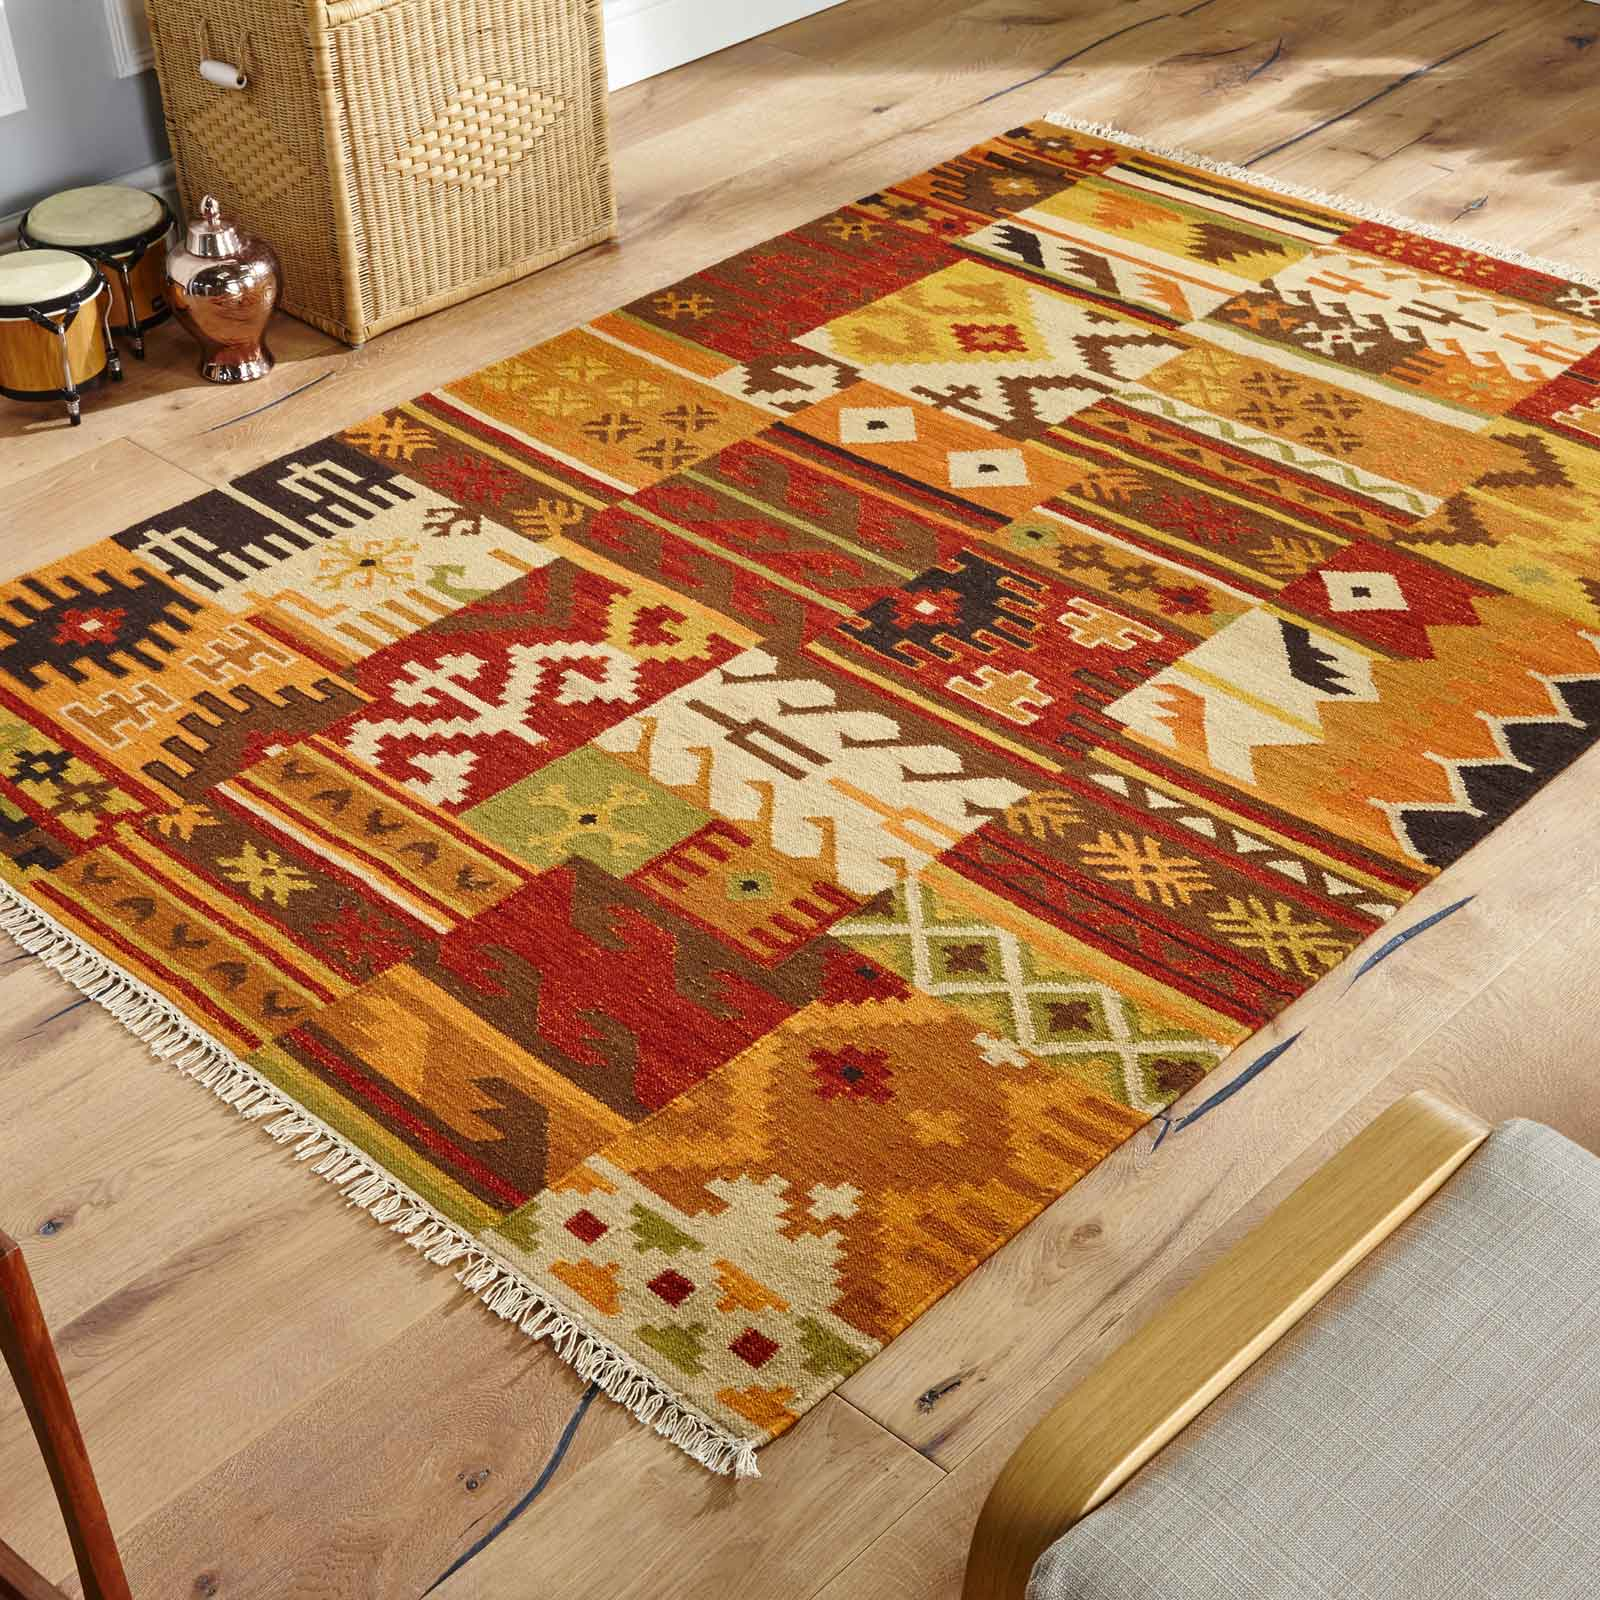 What's The Difference Between A Traditional & Kilim Rug?